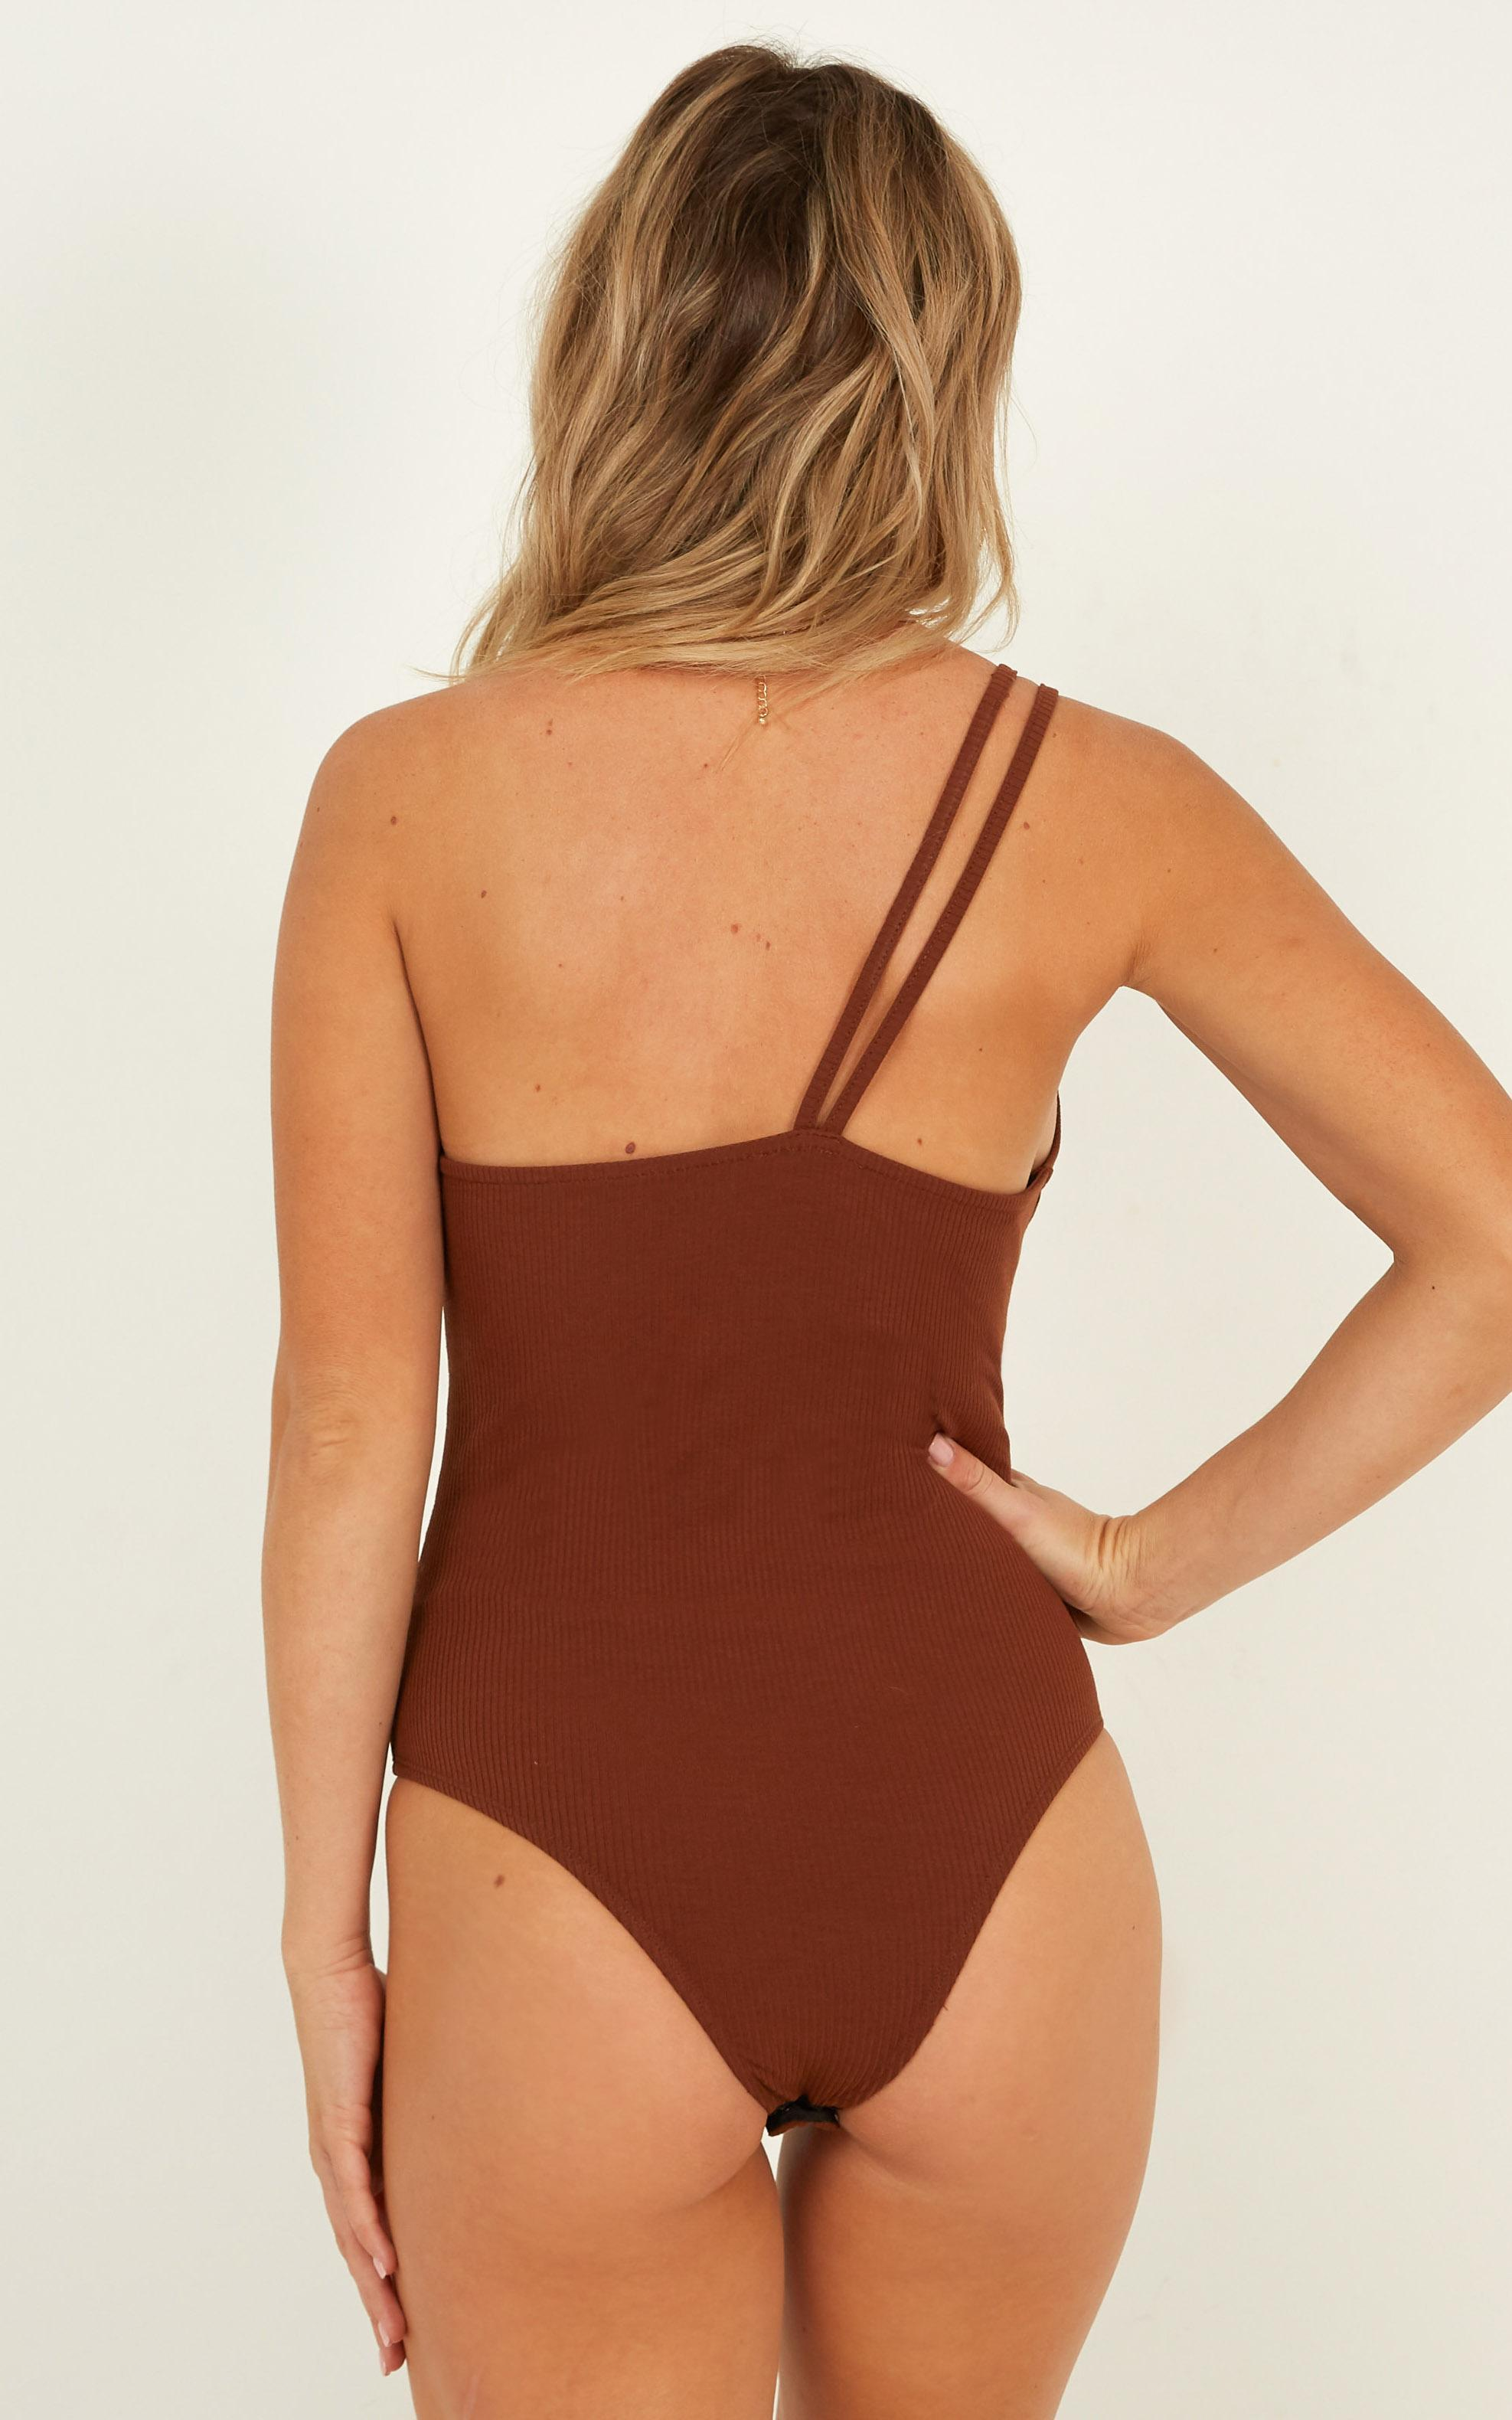 Cosmos Bodysuit In chocolate - 20 (XXXXL), Brown, hi-res image number null